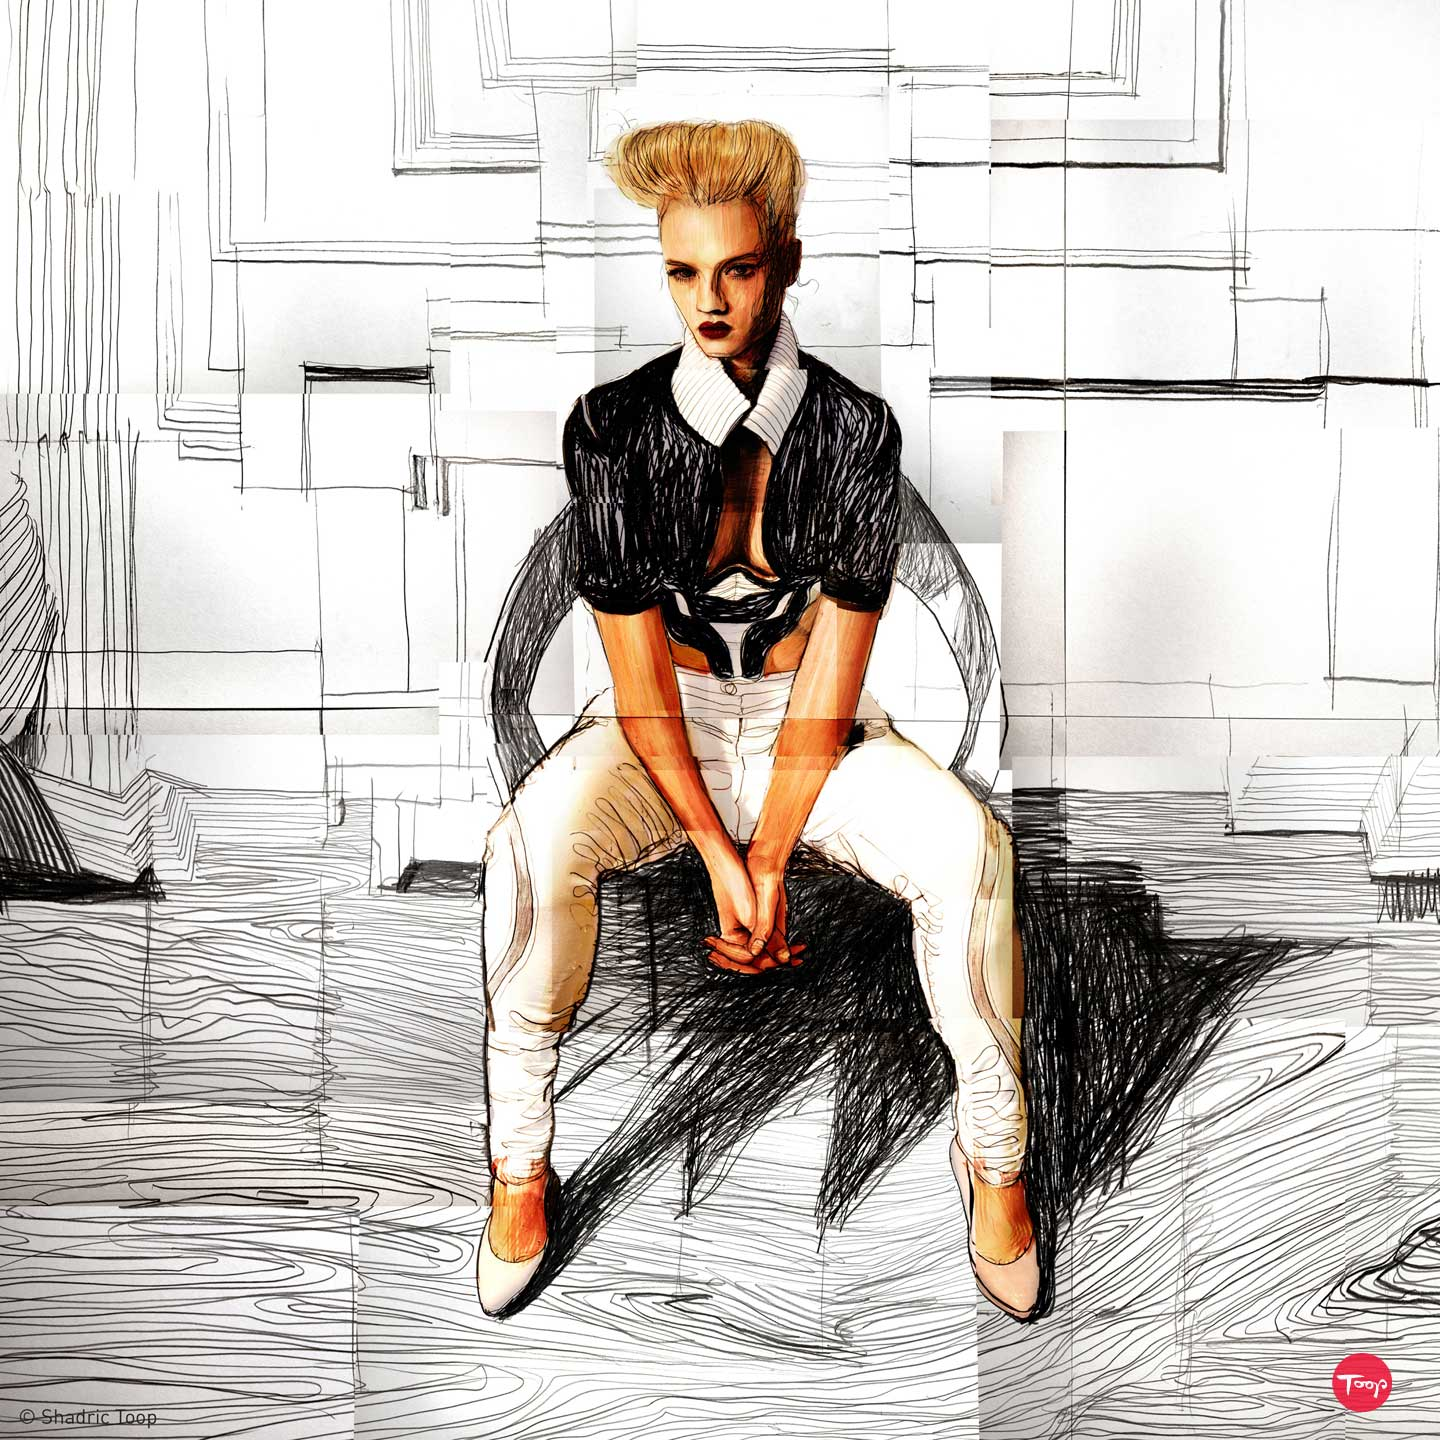 Fashion drawing meets photography by Shadric Toop